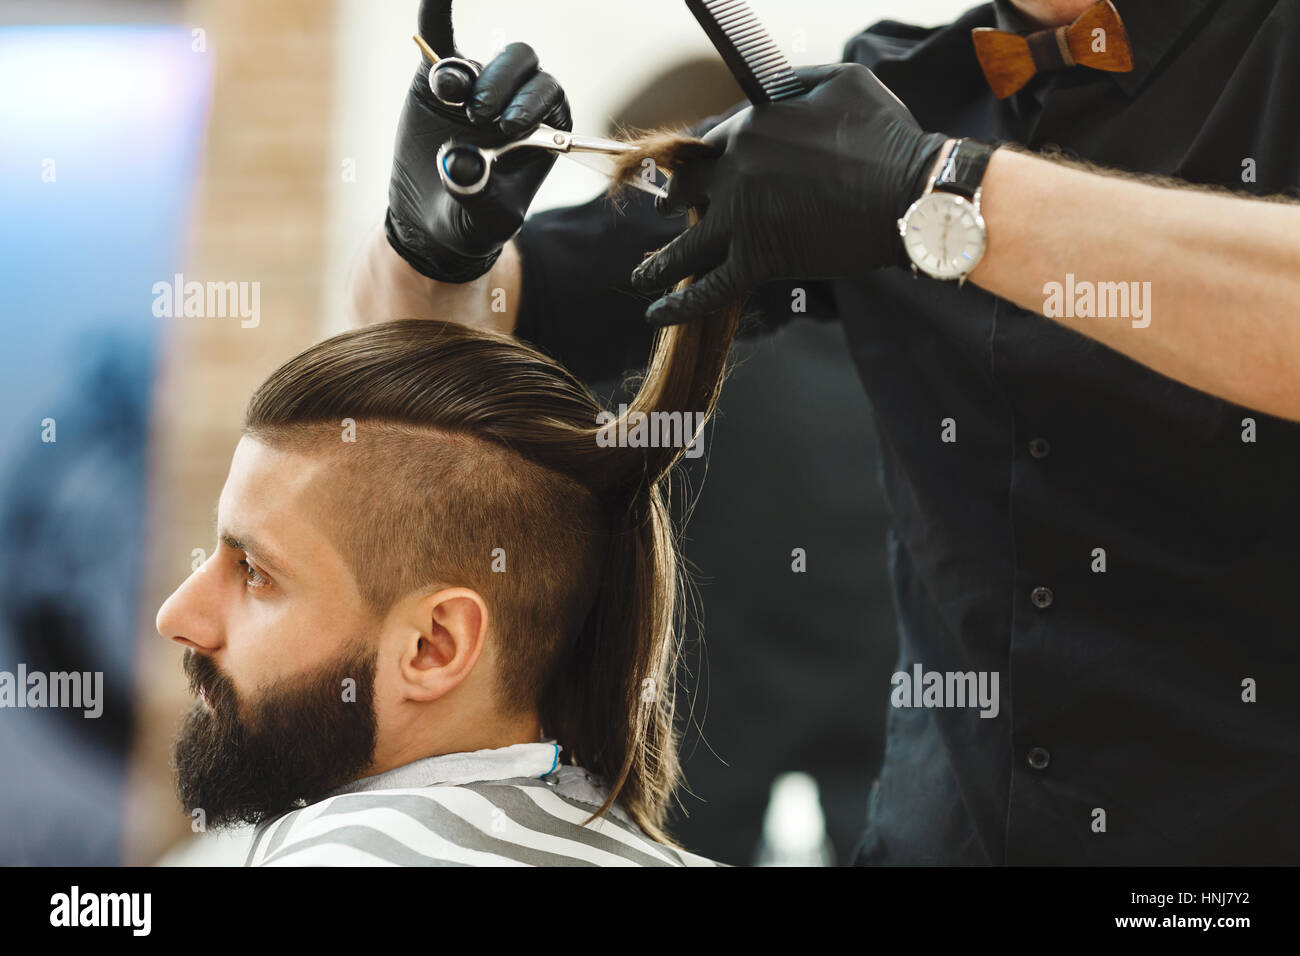 Barber doing haircuts for client - Stock Image